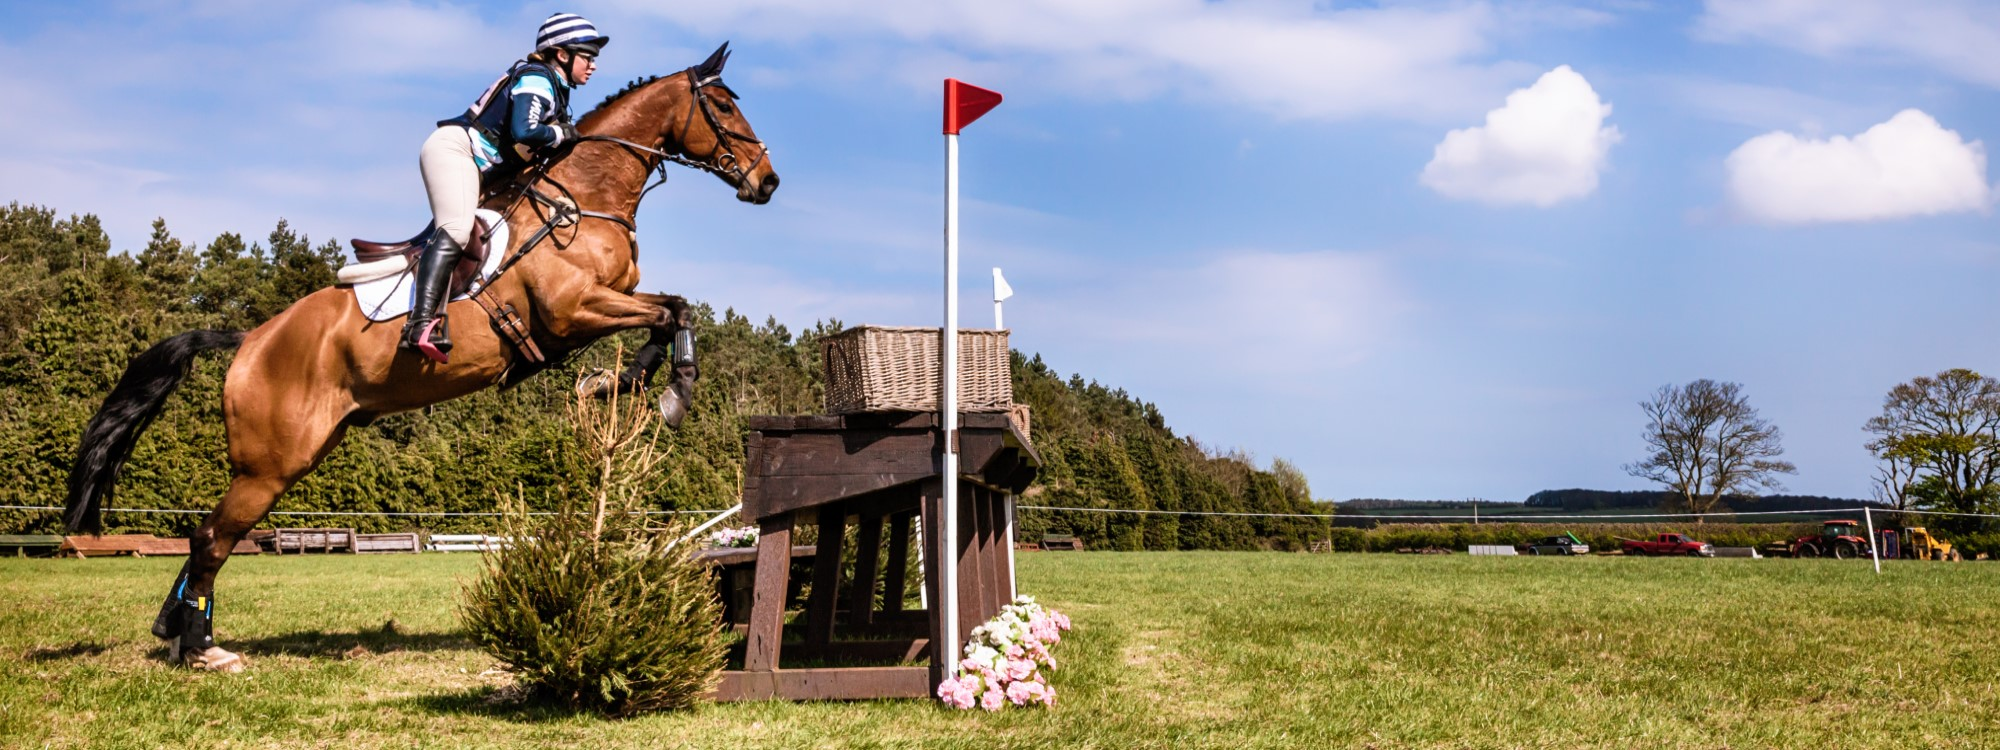 horse competing in cross country